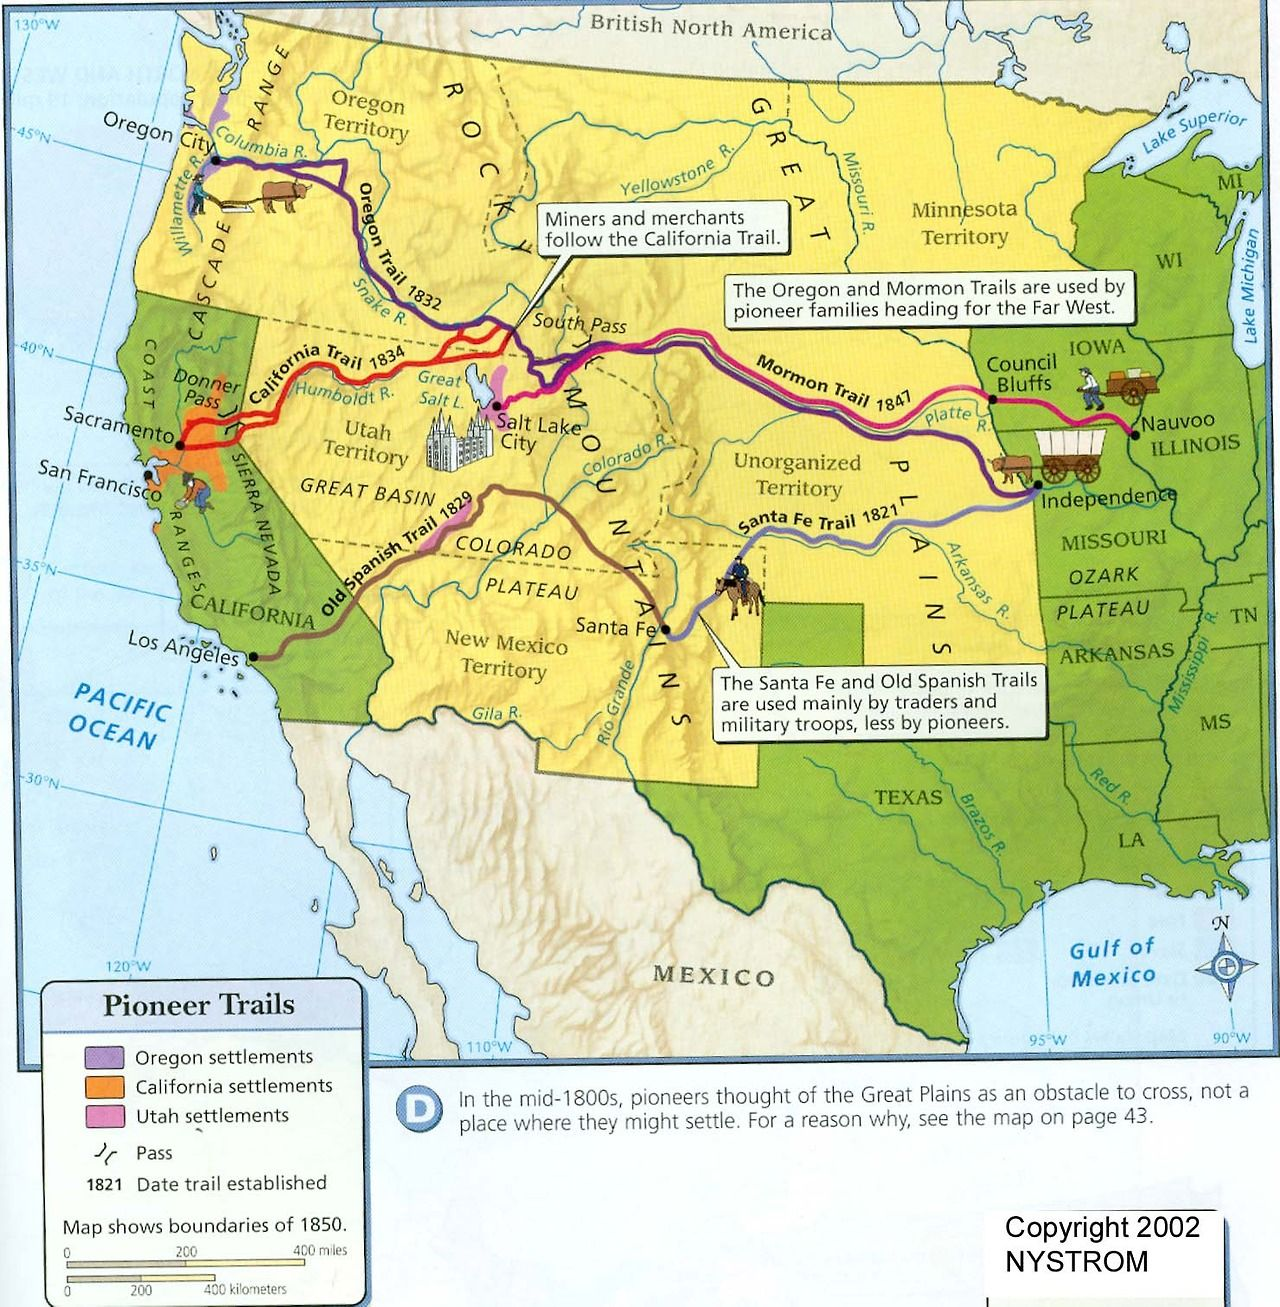 This Map Shows The Routes Of The Pioneer Trails By Which The American West Was Settled In The